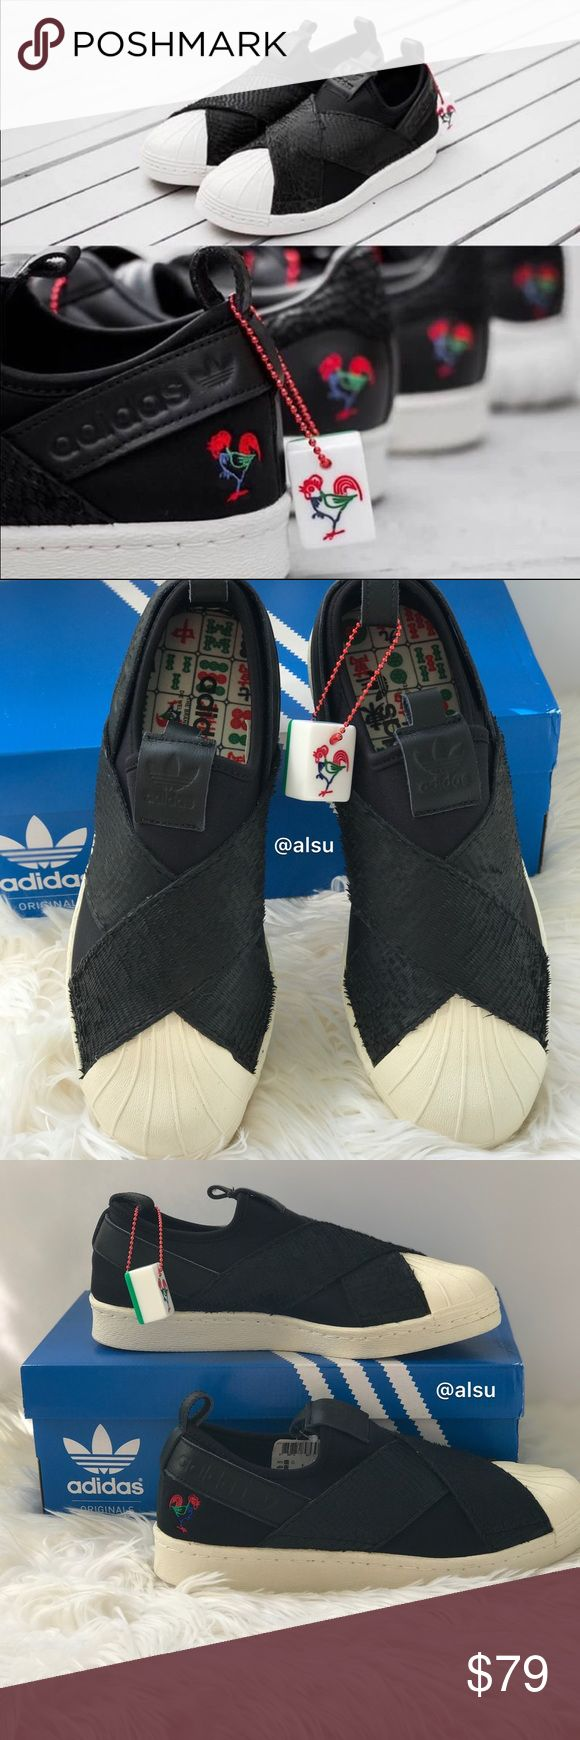 NWT Adidas SUPERSTAR SlipOn W Core Black WMNS Brand new with box. Price is firm! No trades! Runs half size bigger! Size 8 true to size 8,5. Slip-on knit upper with suede overlays Classic rubber shell toe Wide crisscross elastic straps over forefoot Trefoi